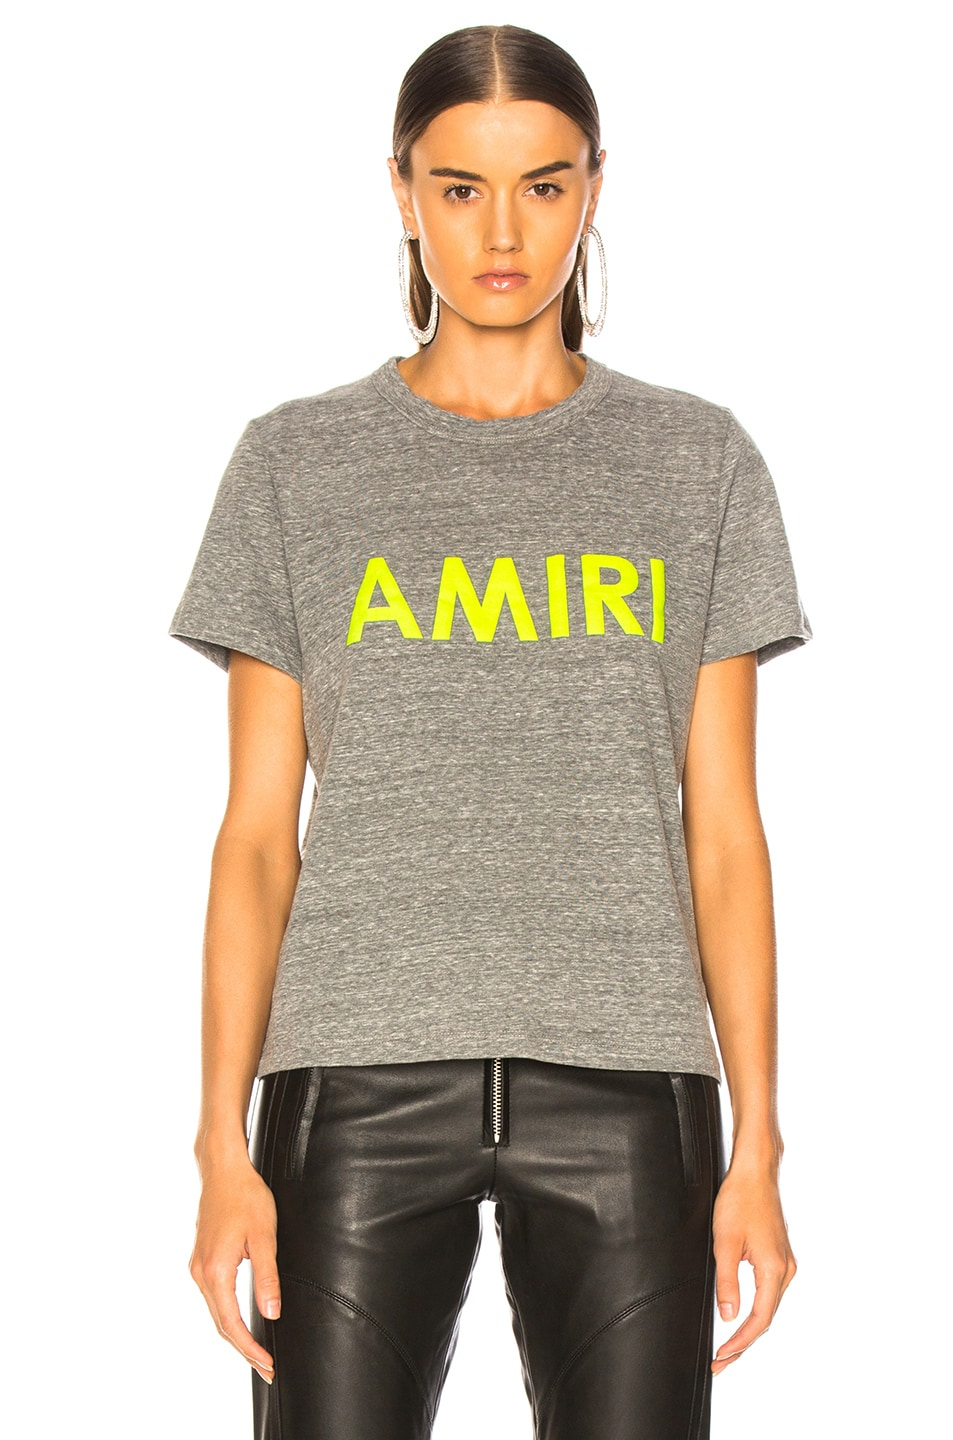 Image 2 of Amiri Tee in Heather Grey & Neon Yellow